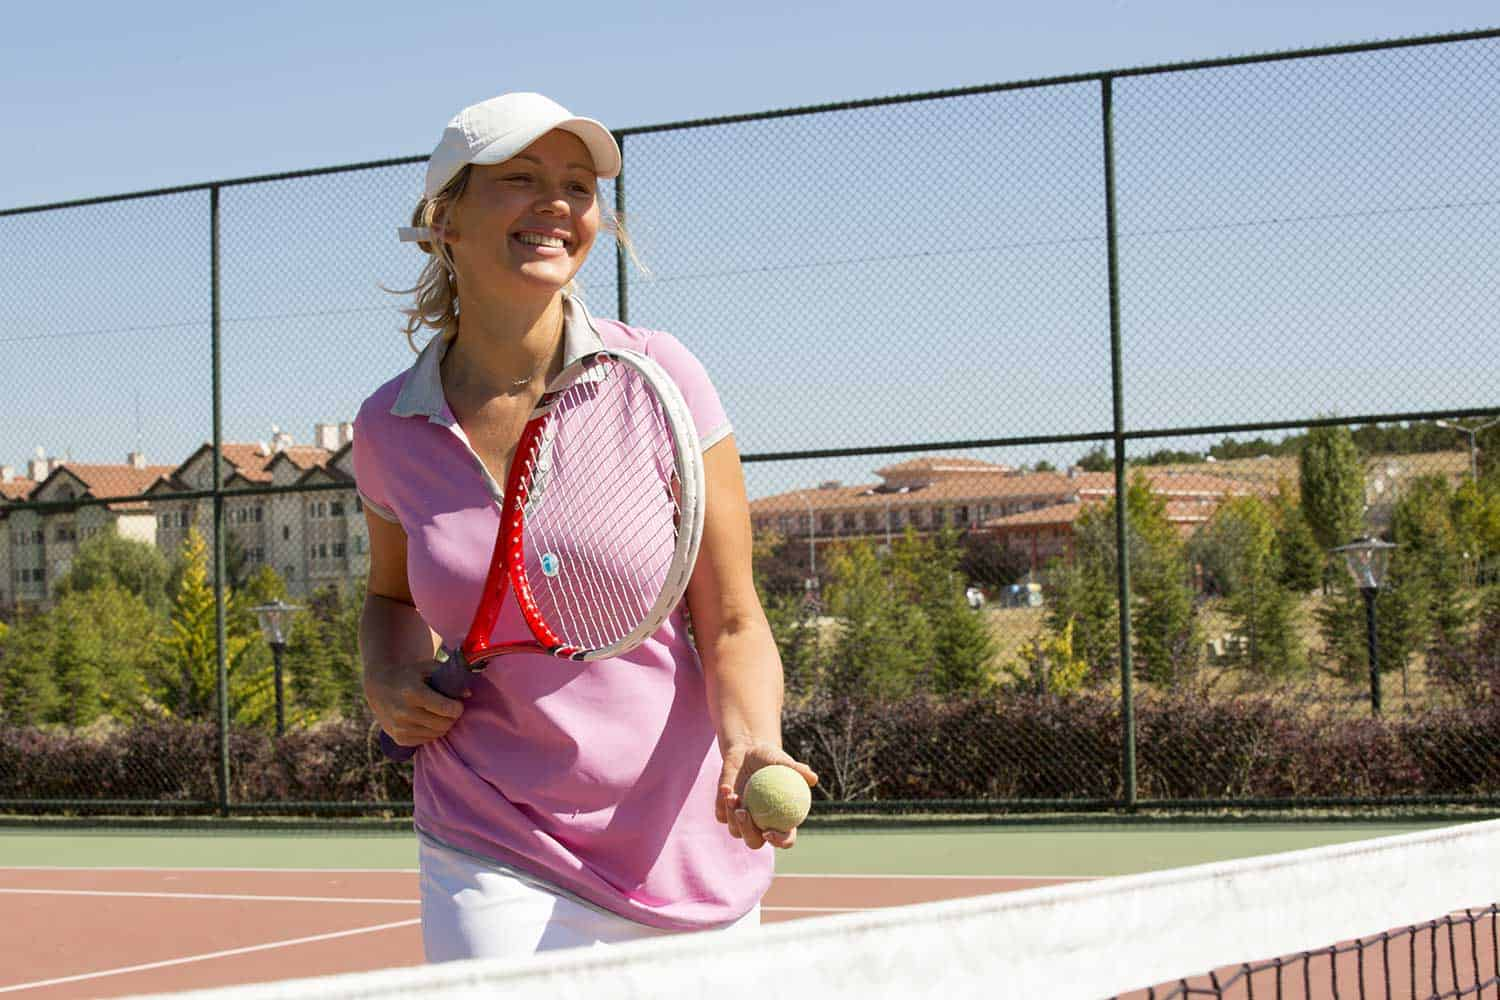 Young female tennis player playing tennis